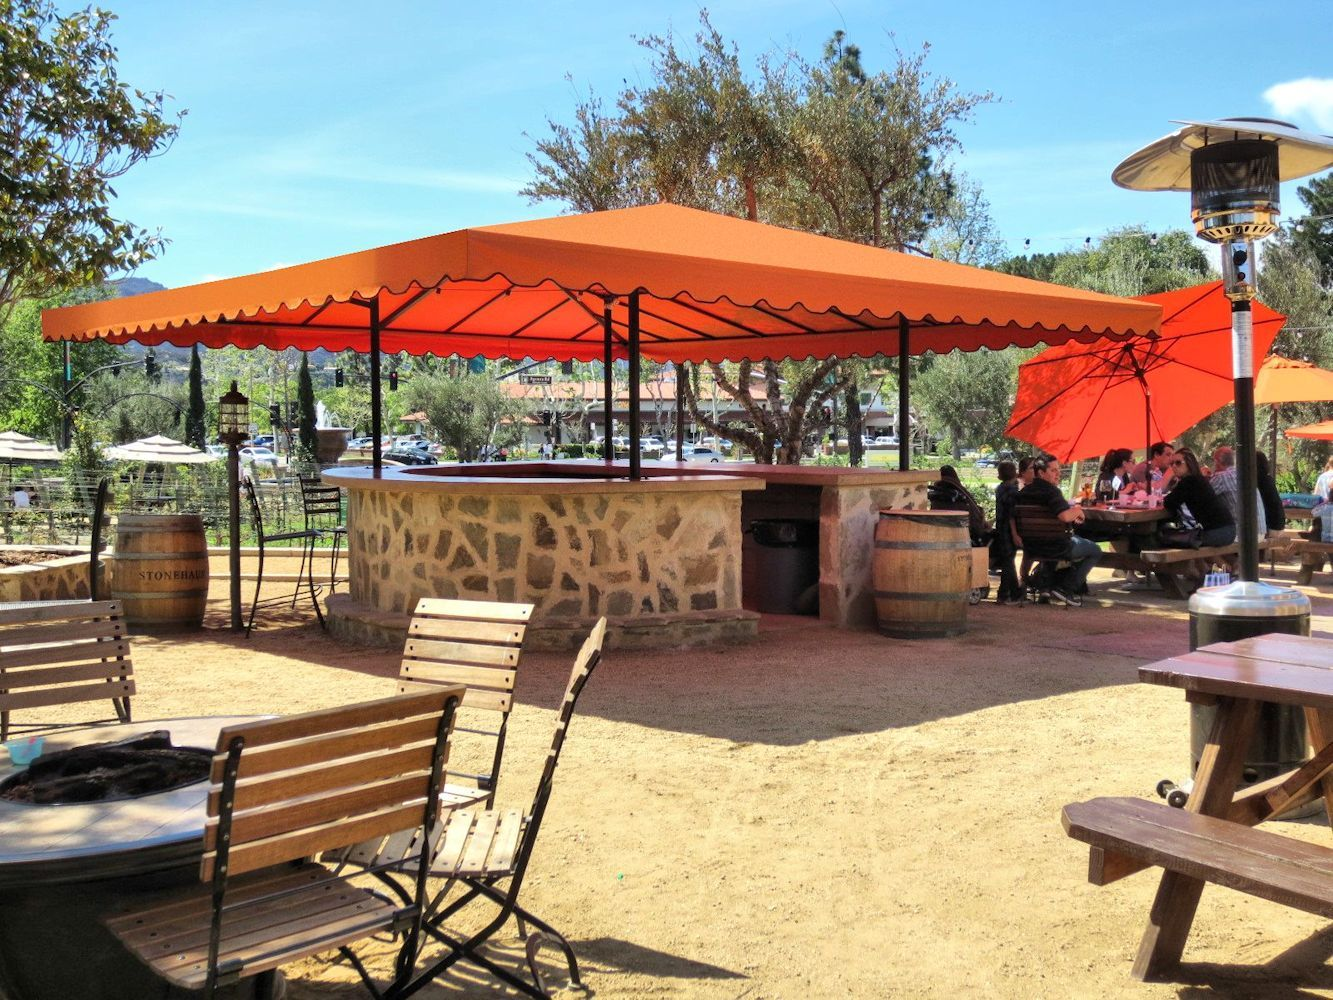 Restaurant Awnings, Dining Patio Covers, Retractable Fabric Patio  Enclosures, Entrance Canopies, Private Cabanas And More.